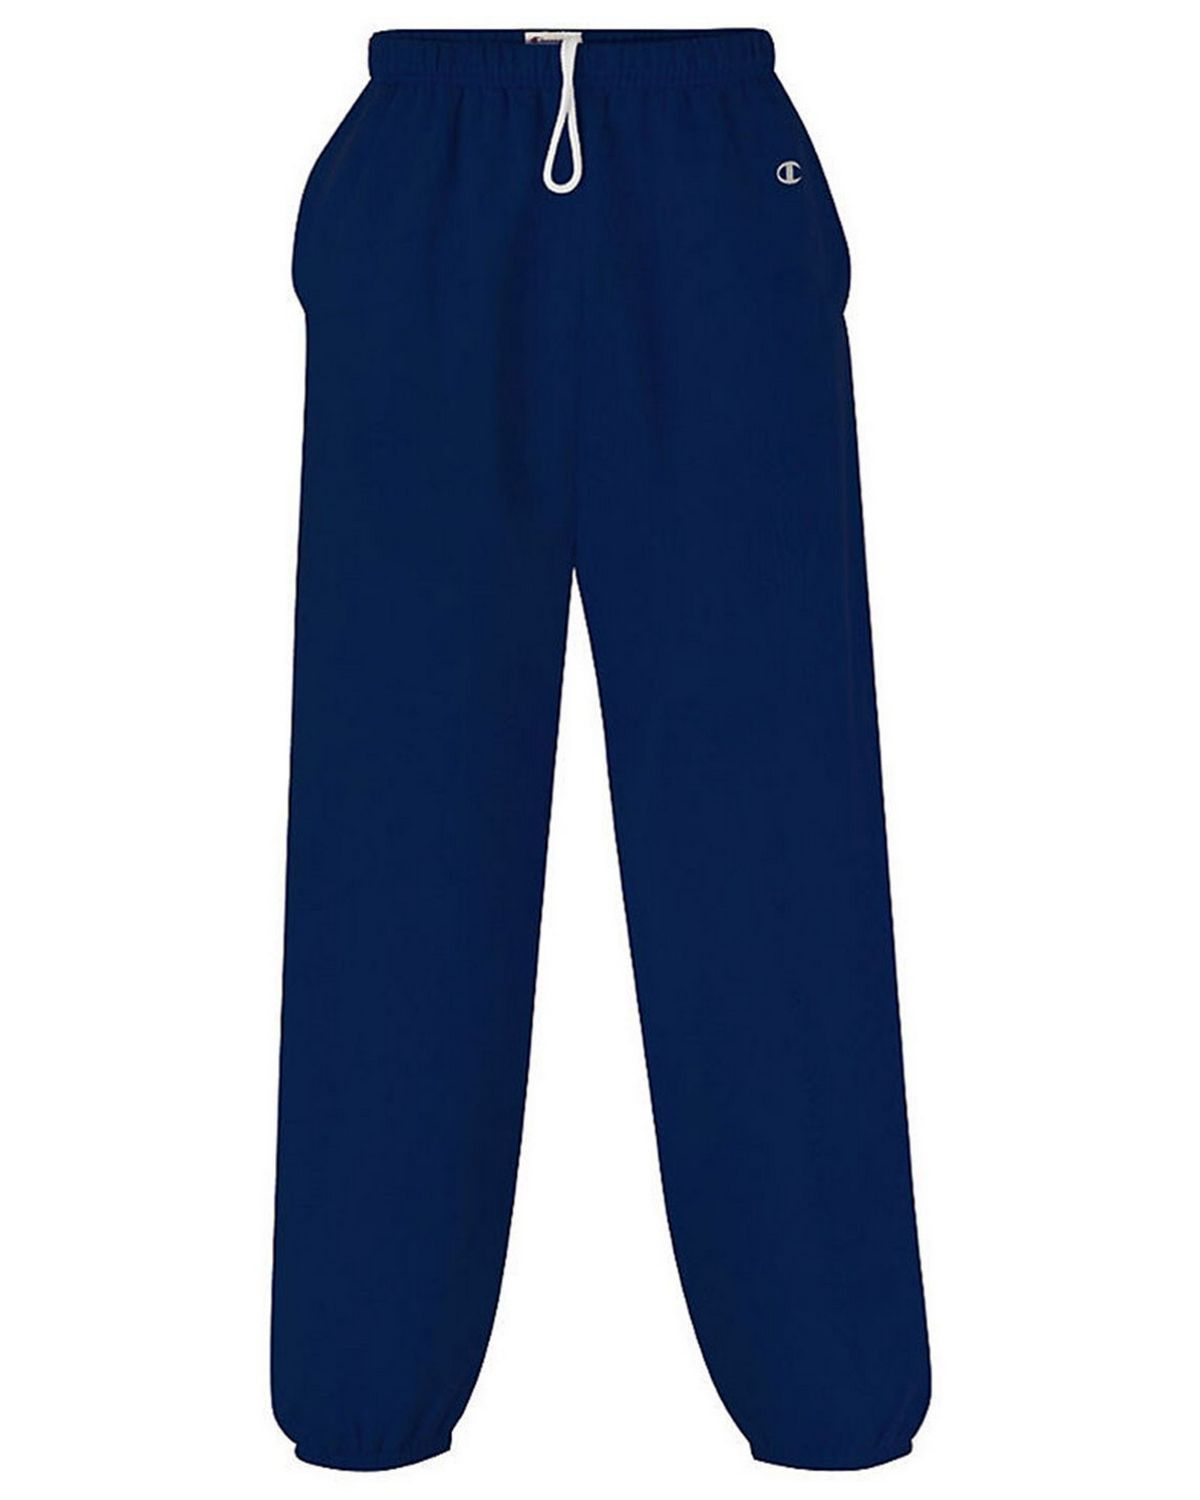 Champion P210 Cotton Max Fleece Pant - Team Navy - S P210